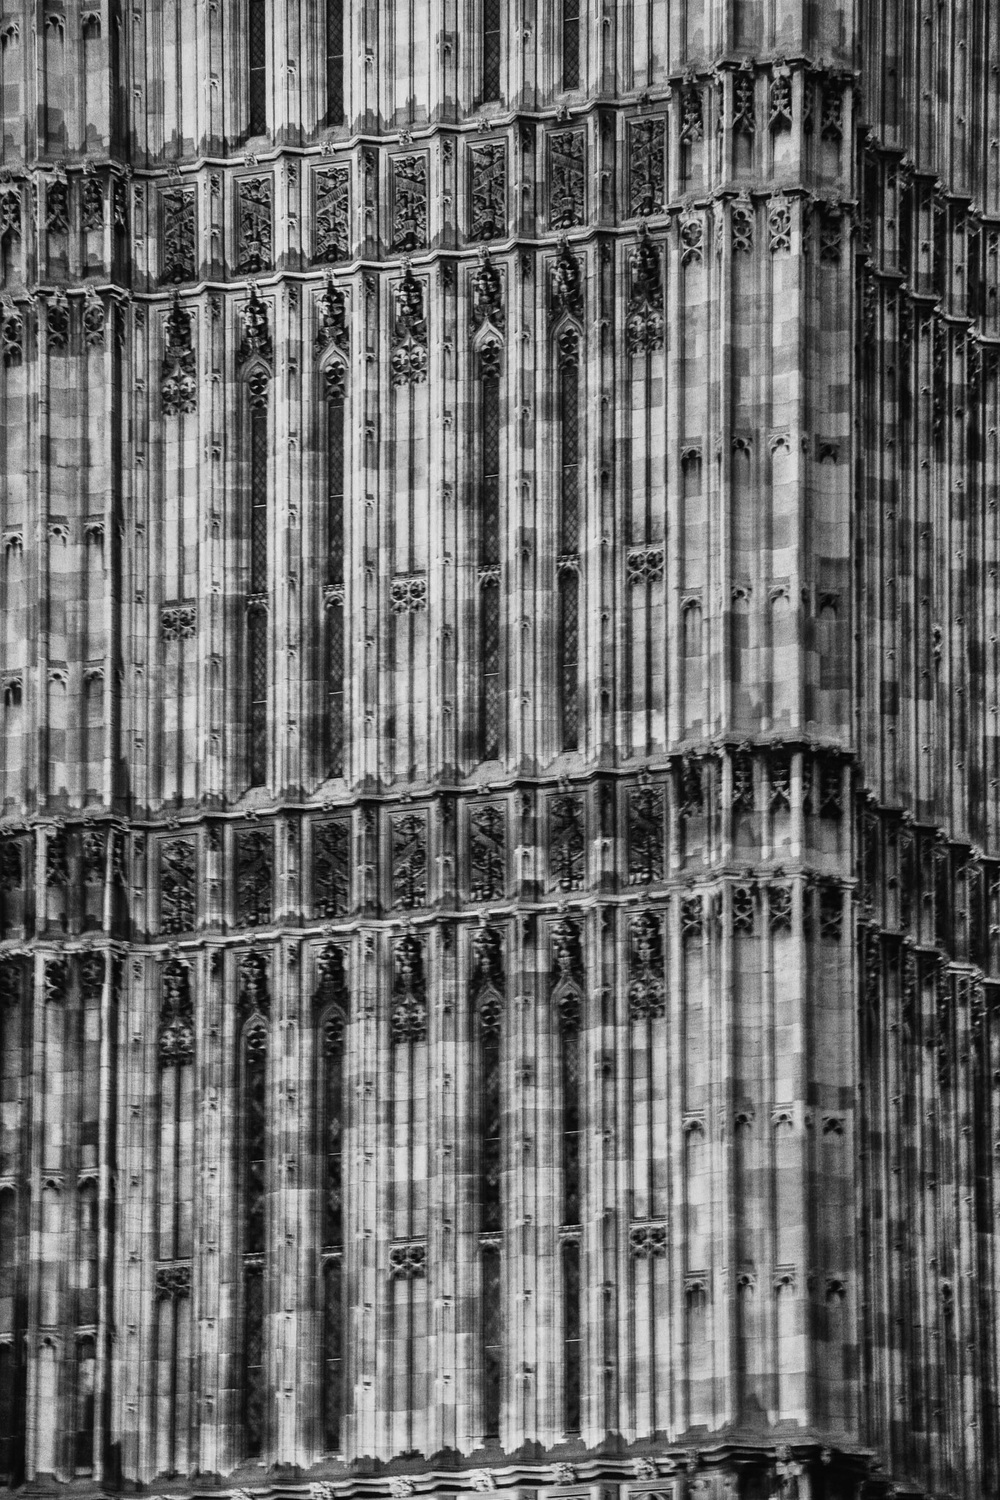 Big Ben, London - black and white close up image